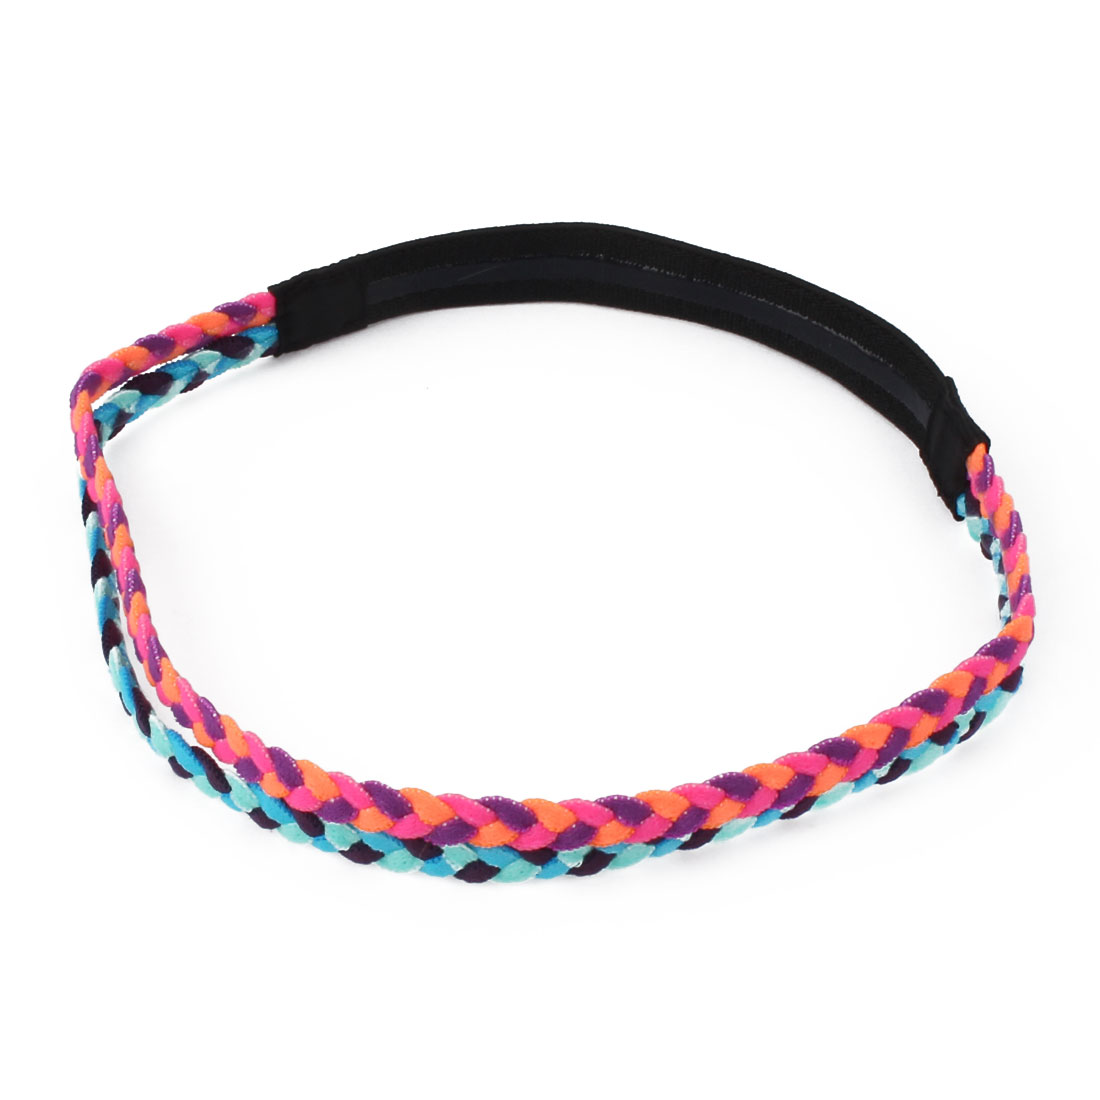 Athletics Elastic Fabric Double Braid Design Non-slip Sports Headband Headwrap Orange Blue